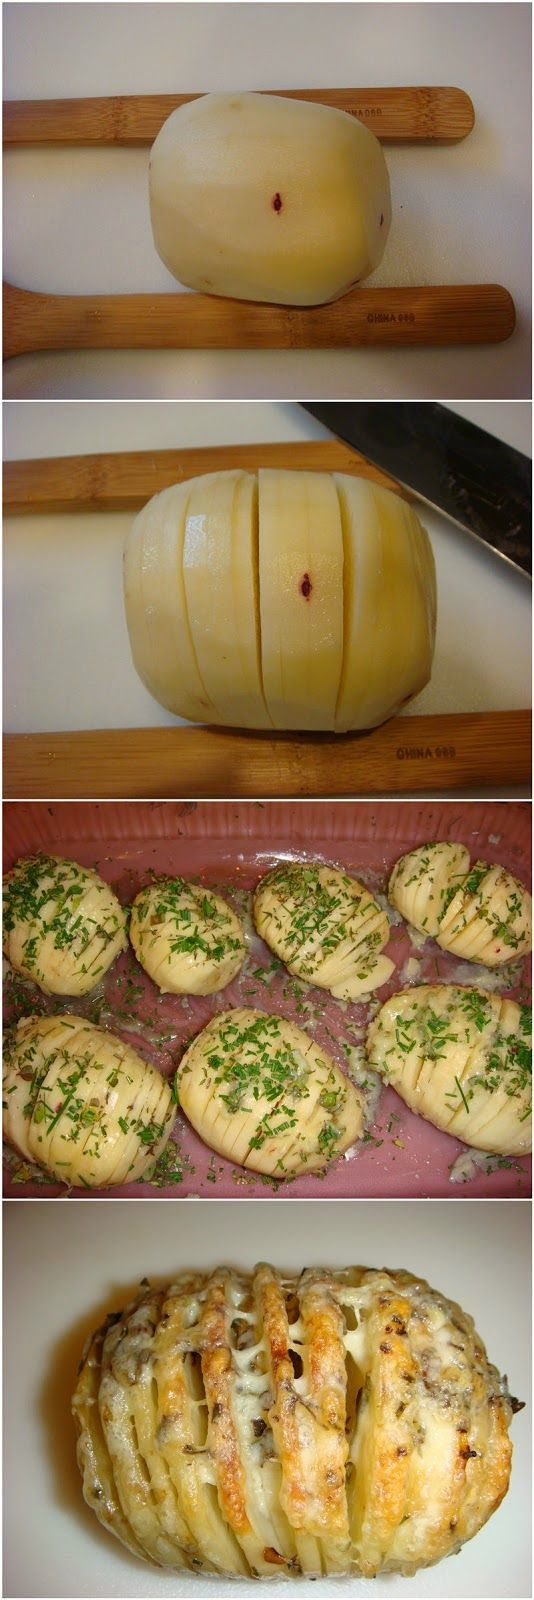 Super Stuffz: Sliced Baked Potatoes with Herbs and Cheese